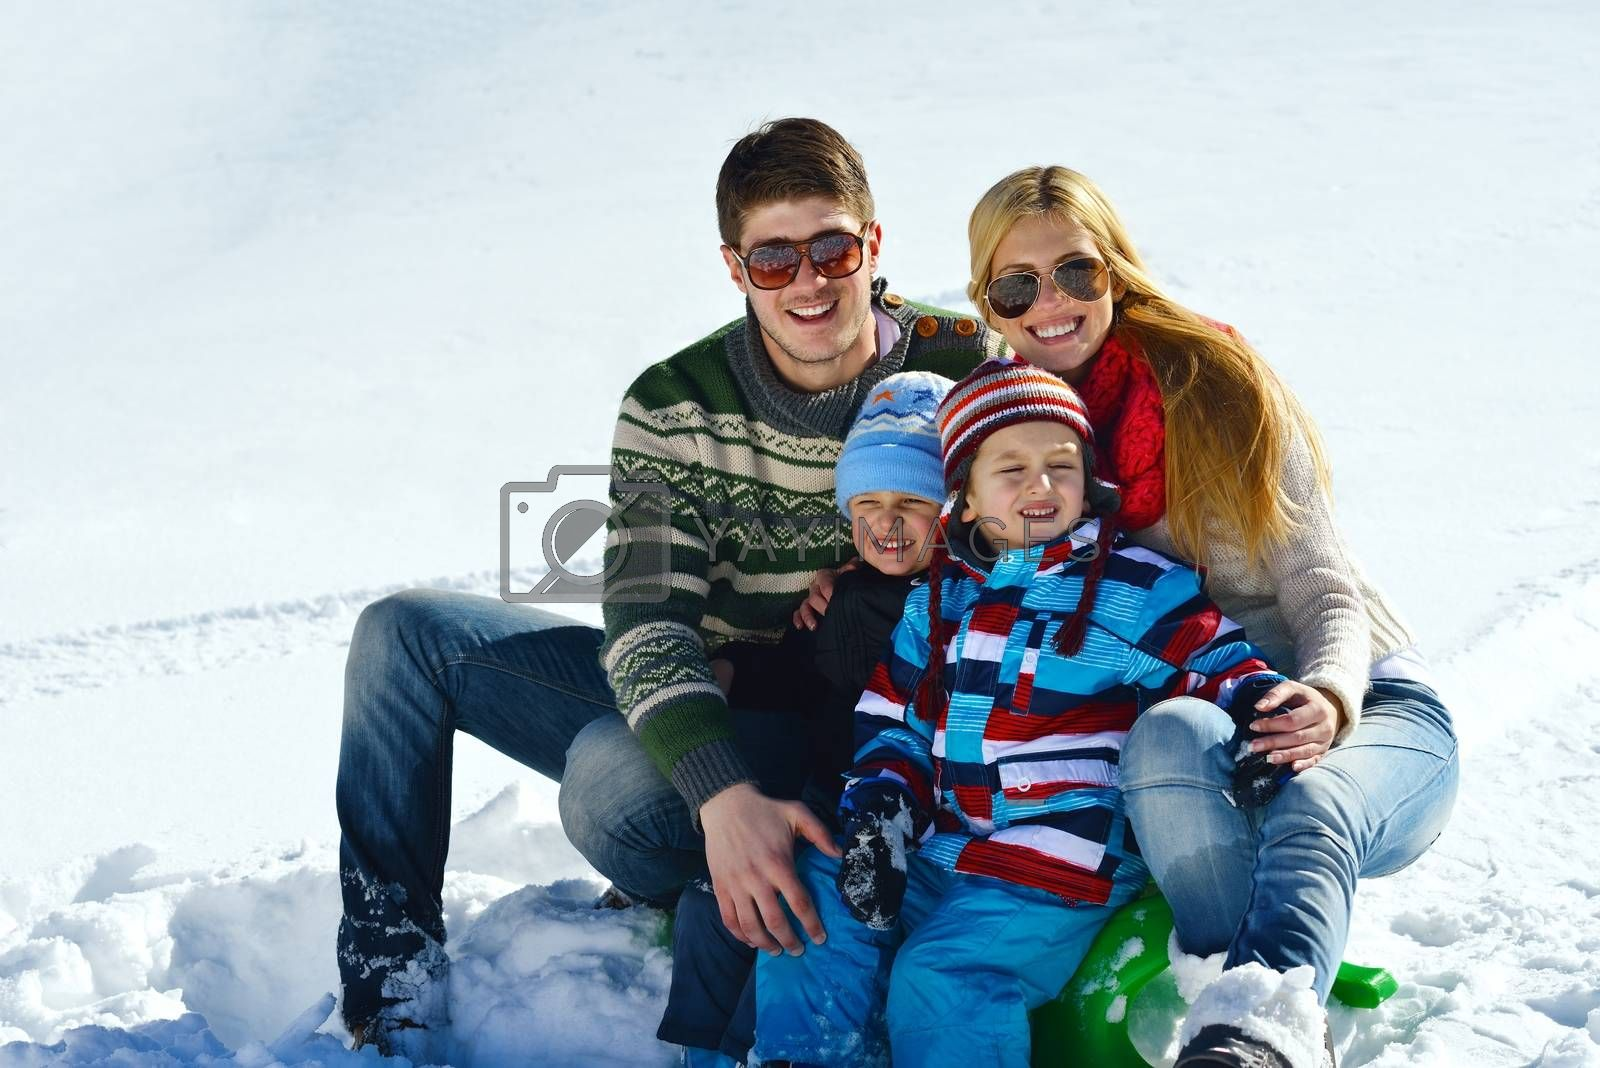 family having fun on fresh snow at winter vacation by .shock